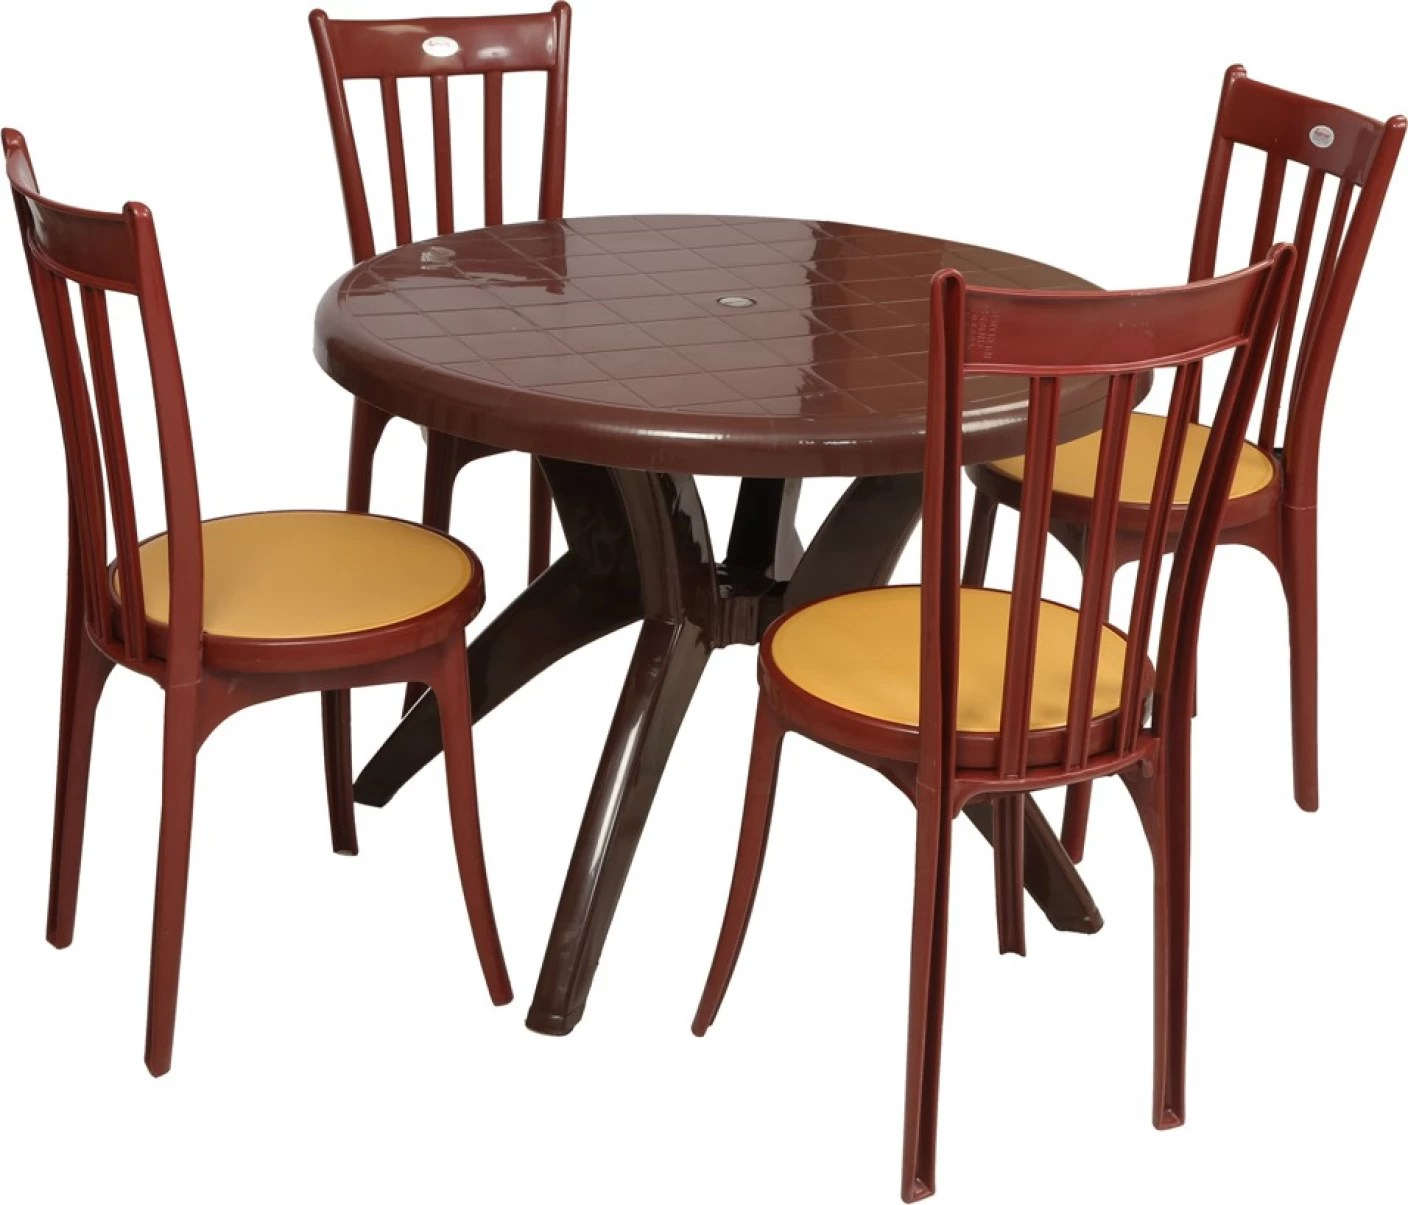 plastic table and chair set folding outdoor supreme teak wood price in india